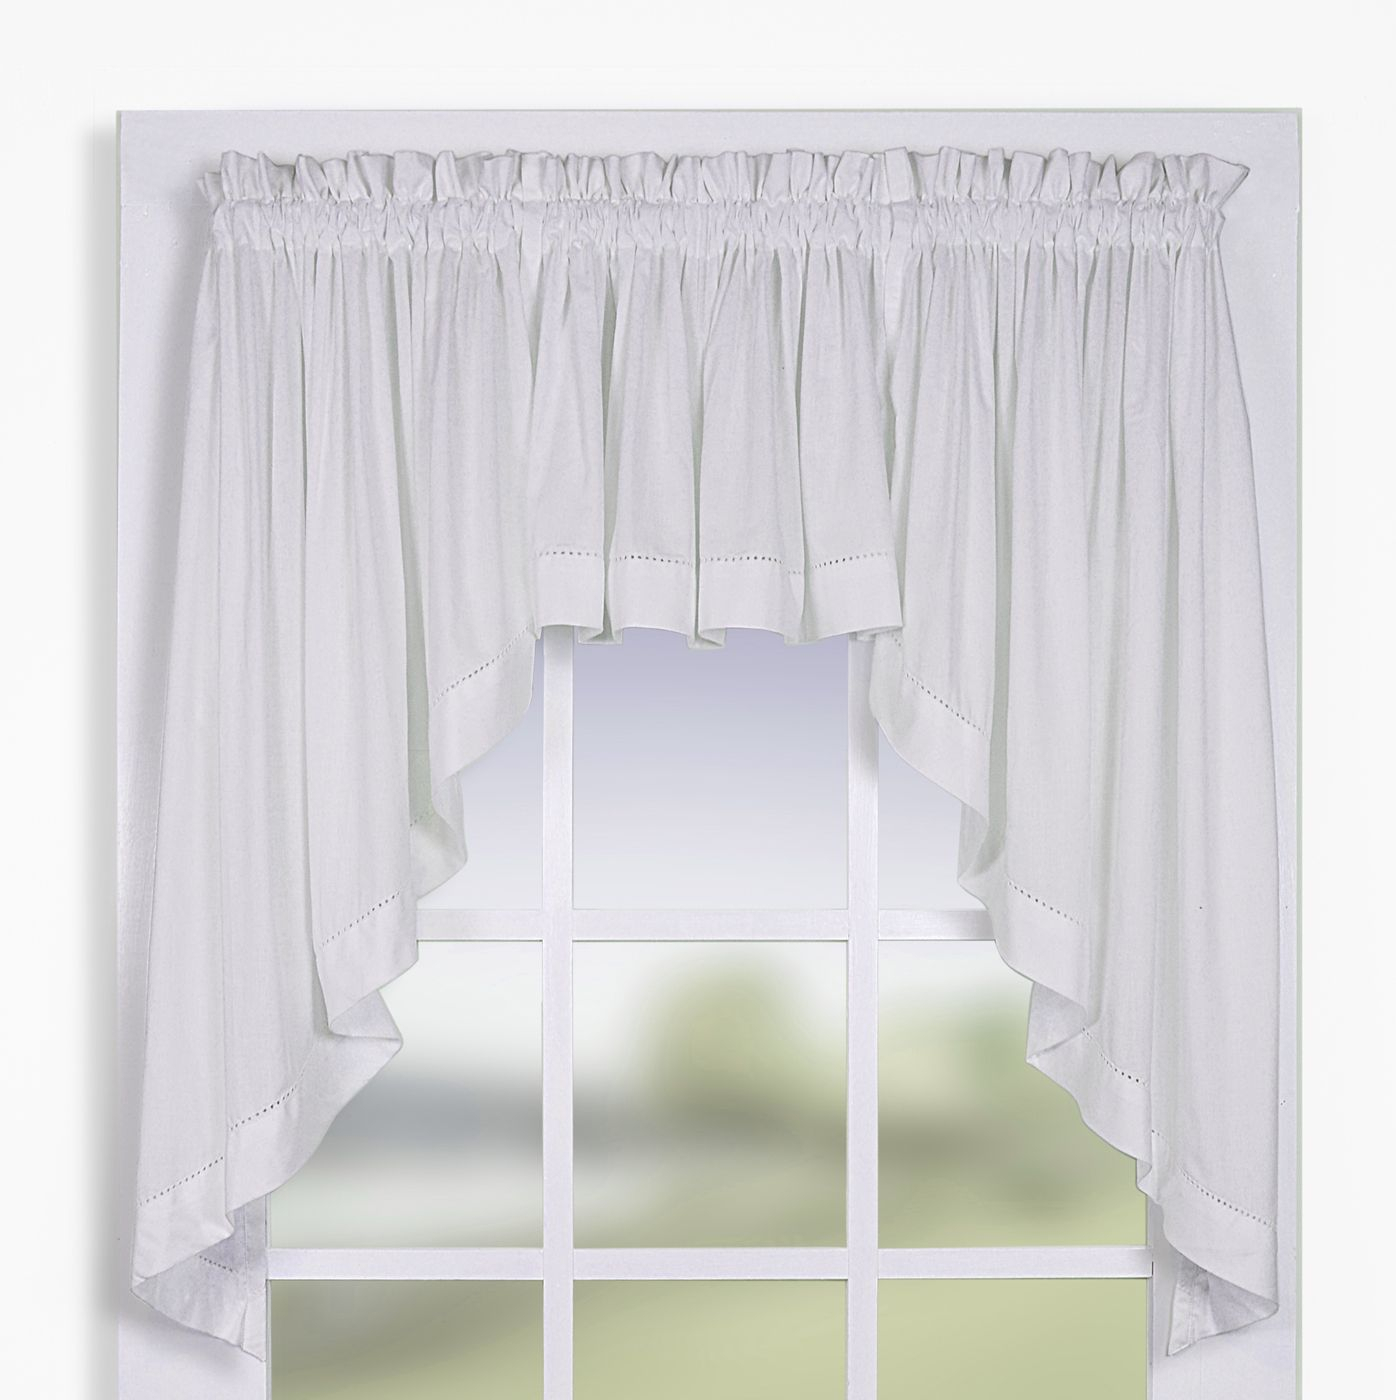 Swag Curtains: Solid, Patterned, Sheer within Maize Vertical Ruffled Waterfall Valance And Curtain Tiers (Image 12 of 20)